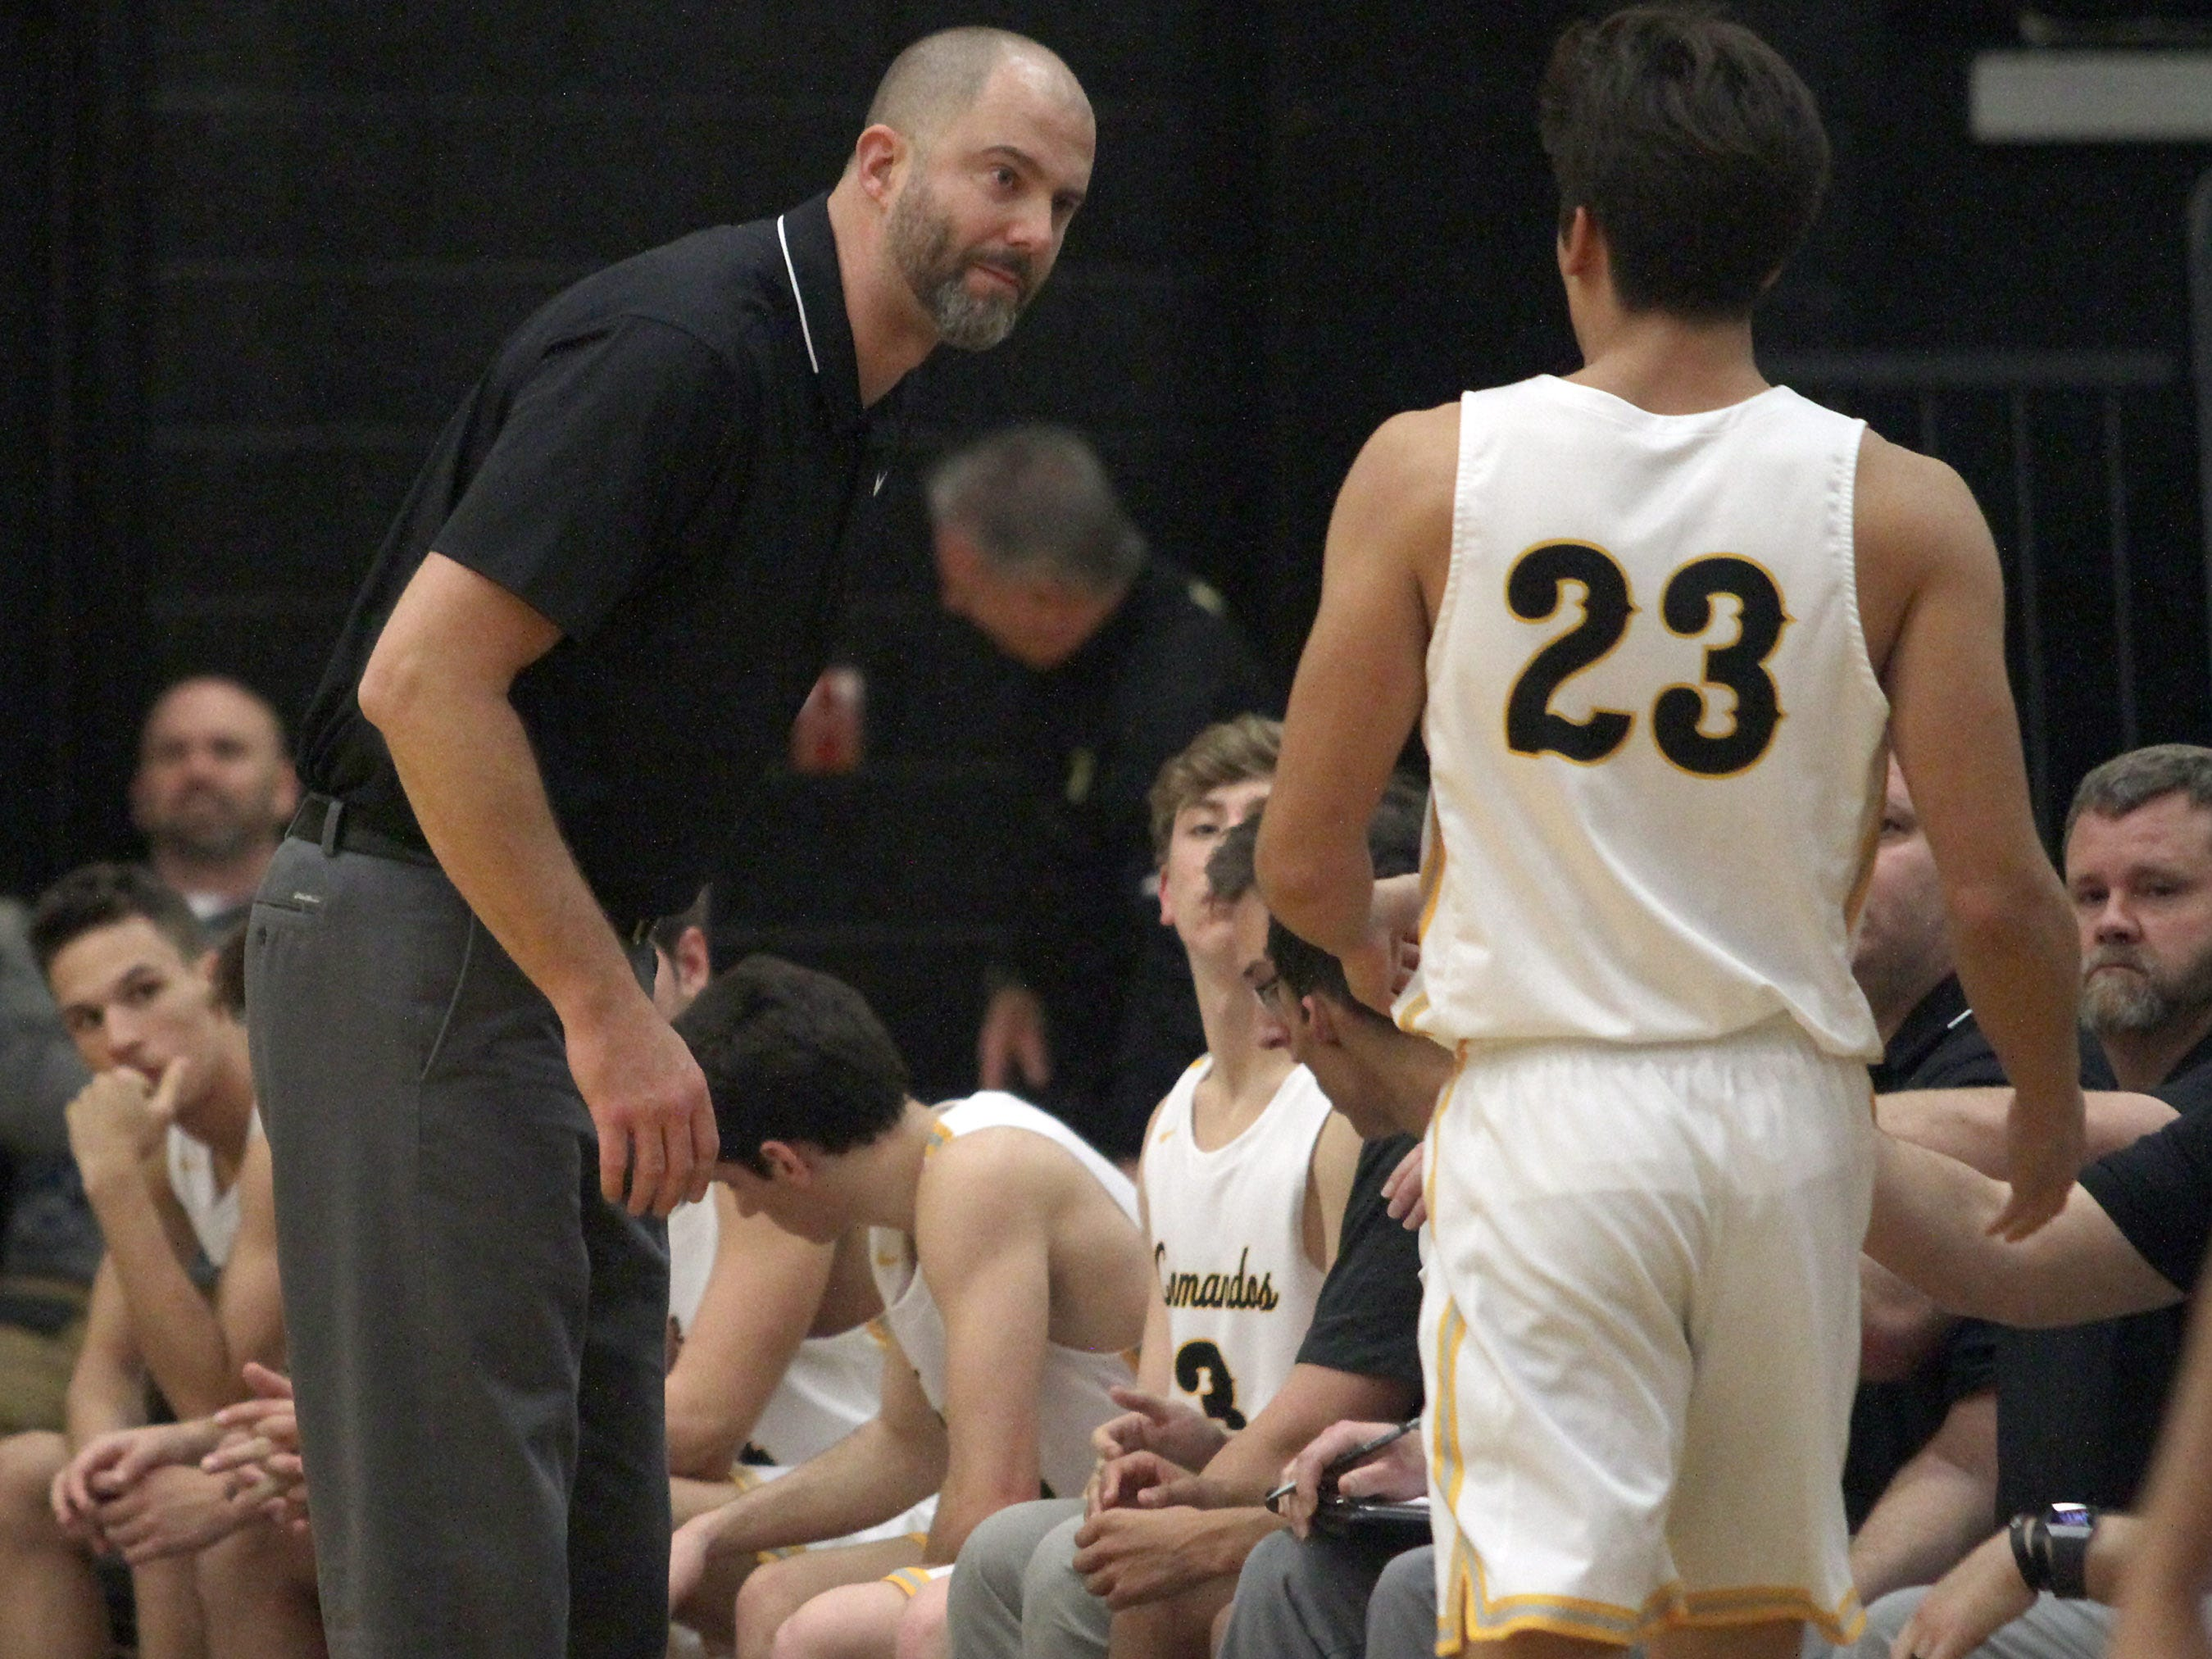 Hendersonville coach Clancy Hall looks to have a word with Derek Kincaid on Tueseday, December 11, 2018.